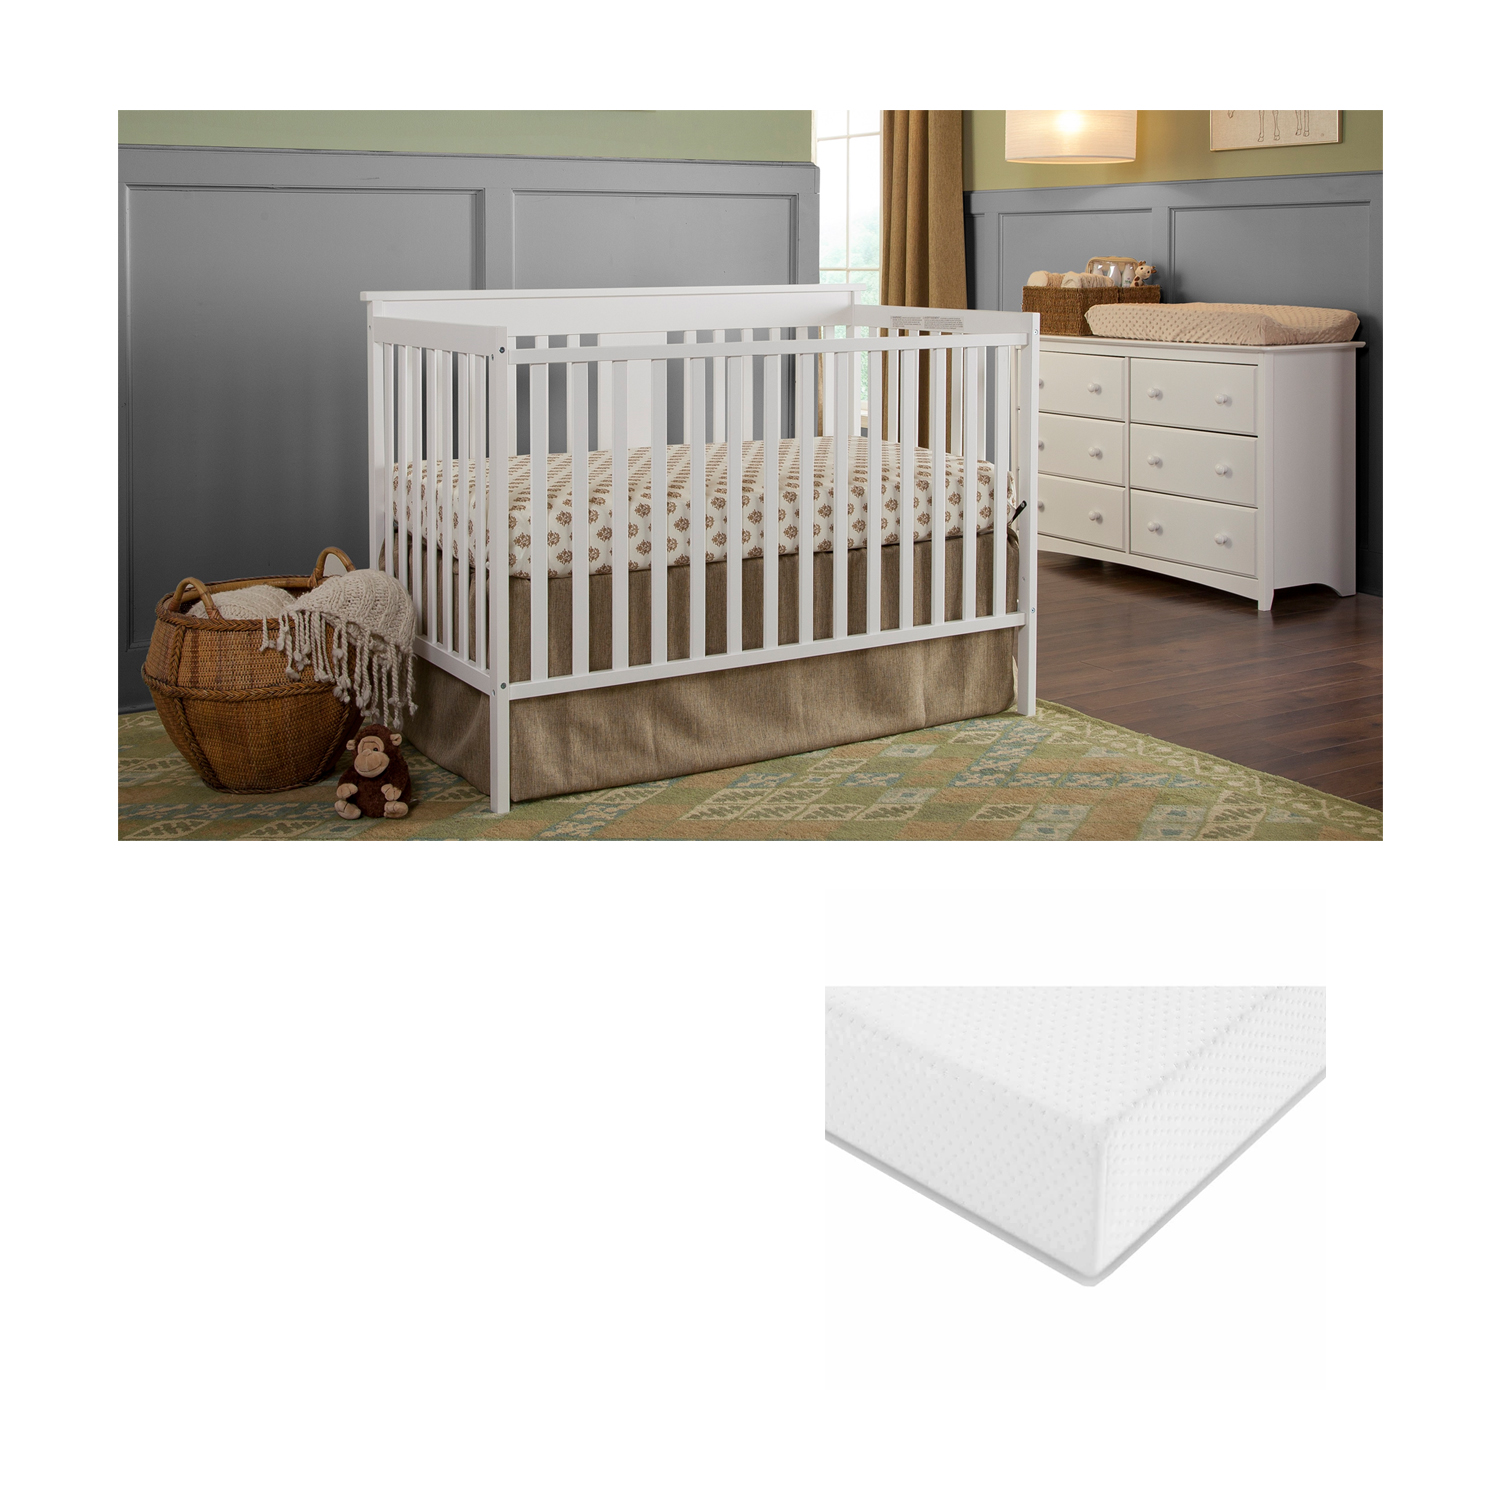 Storkcraft Sheffield II 4 in 1 Convertible Crib with BONUS Graco Premium Mattress